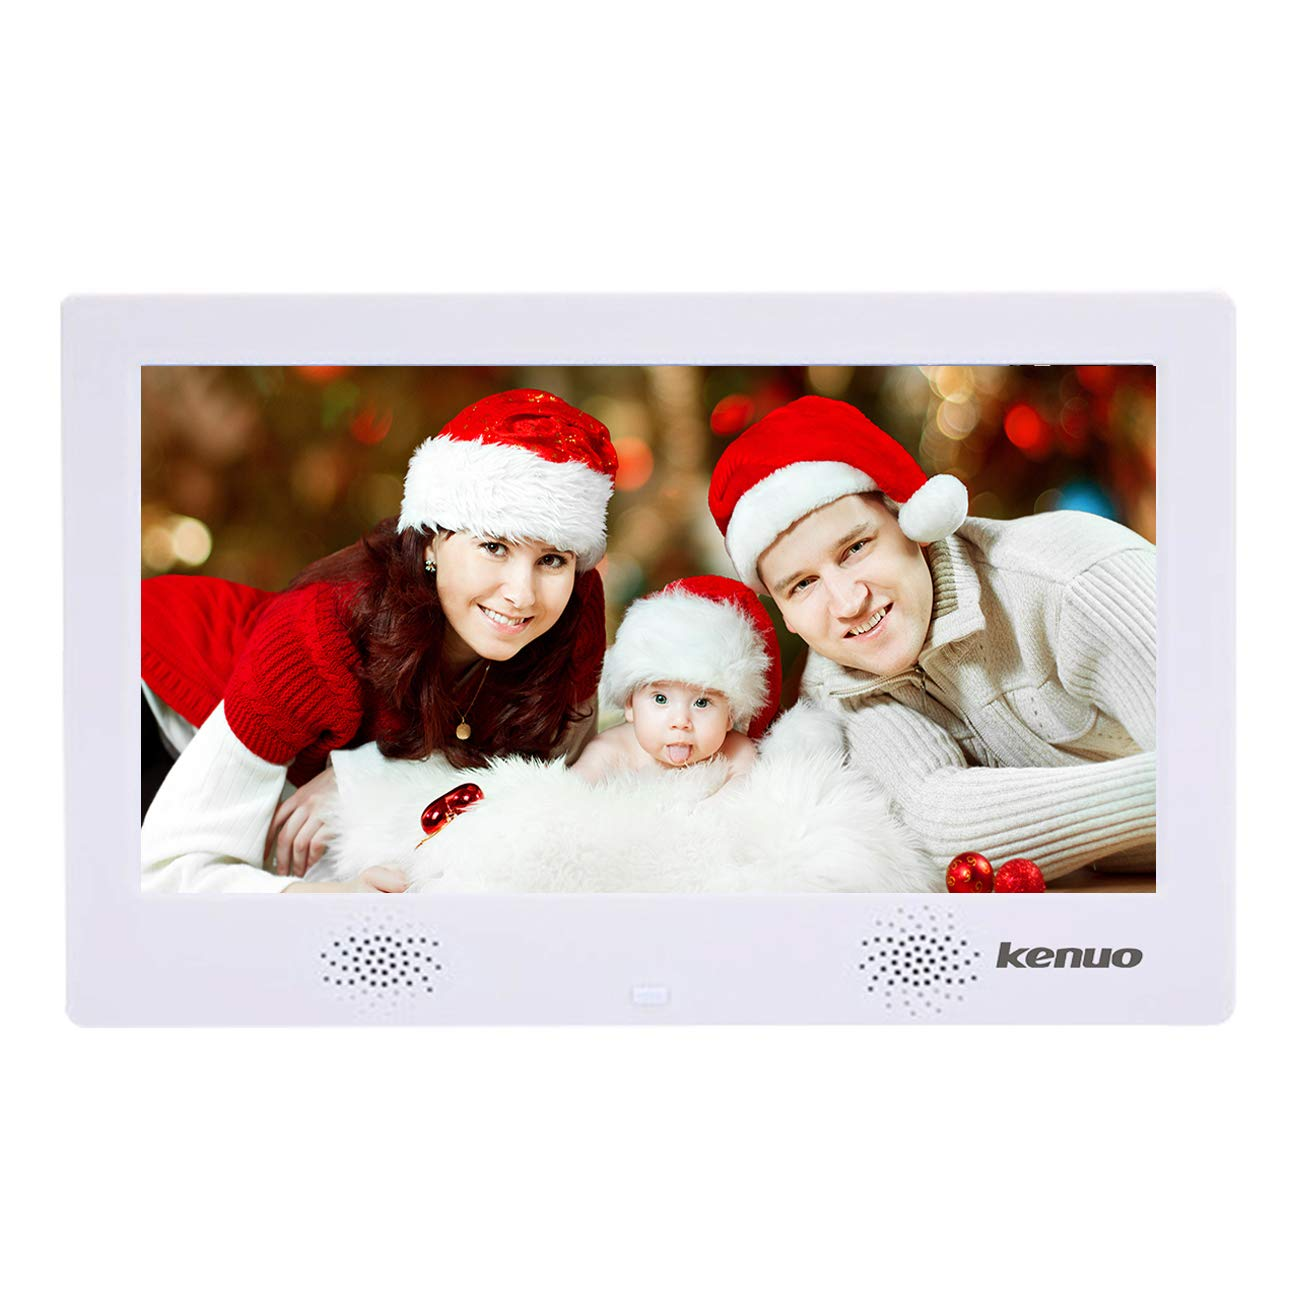 Digital Photo Frame Kenuo 13 Inch Digital Picture Frame 1280 x 800 HD LED Screen with Calendar, MP3/Photo/Video Player with Remote Control (13 Inch, White)